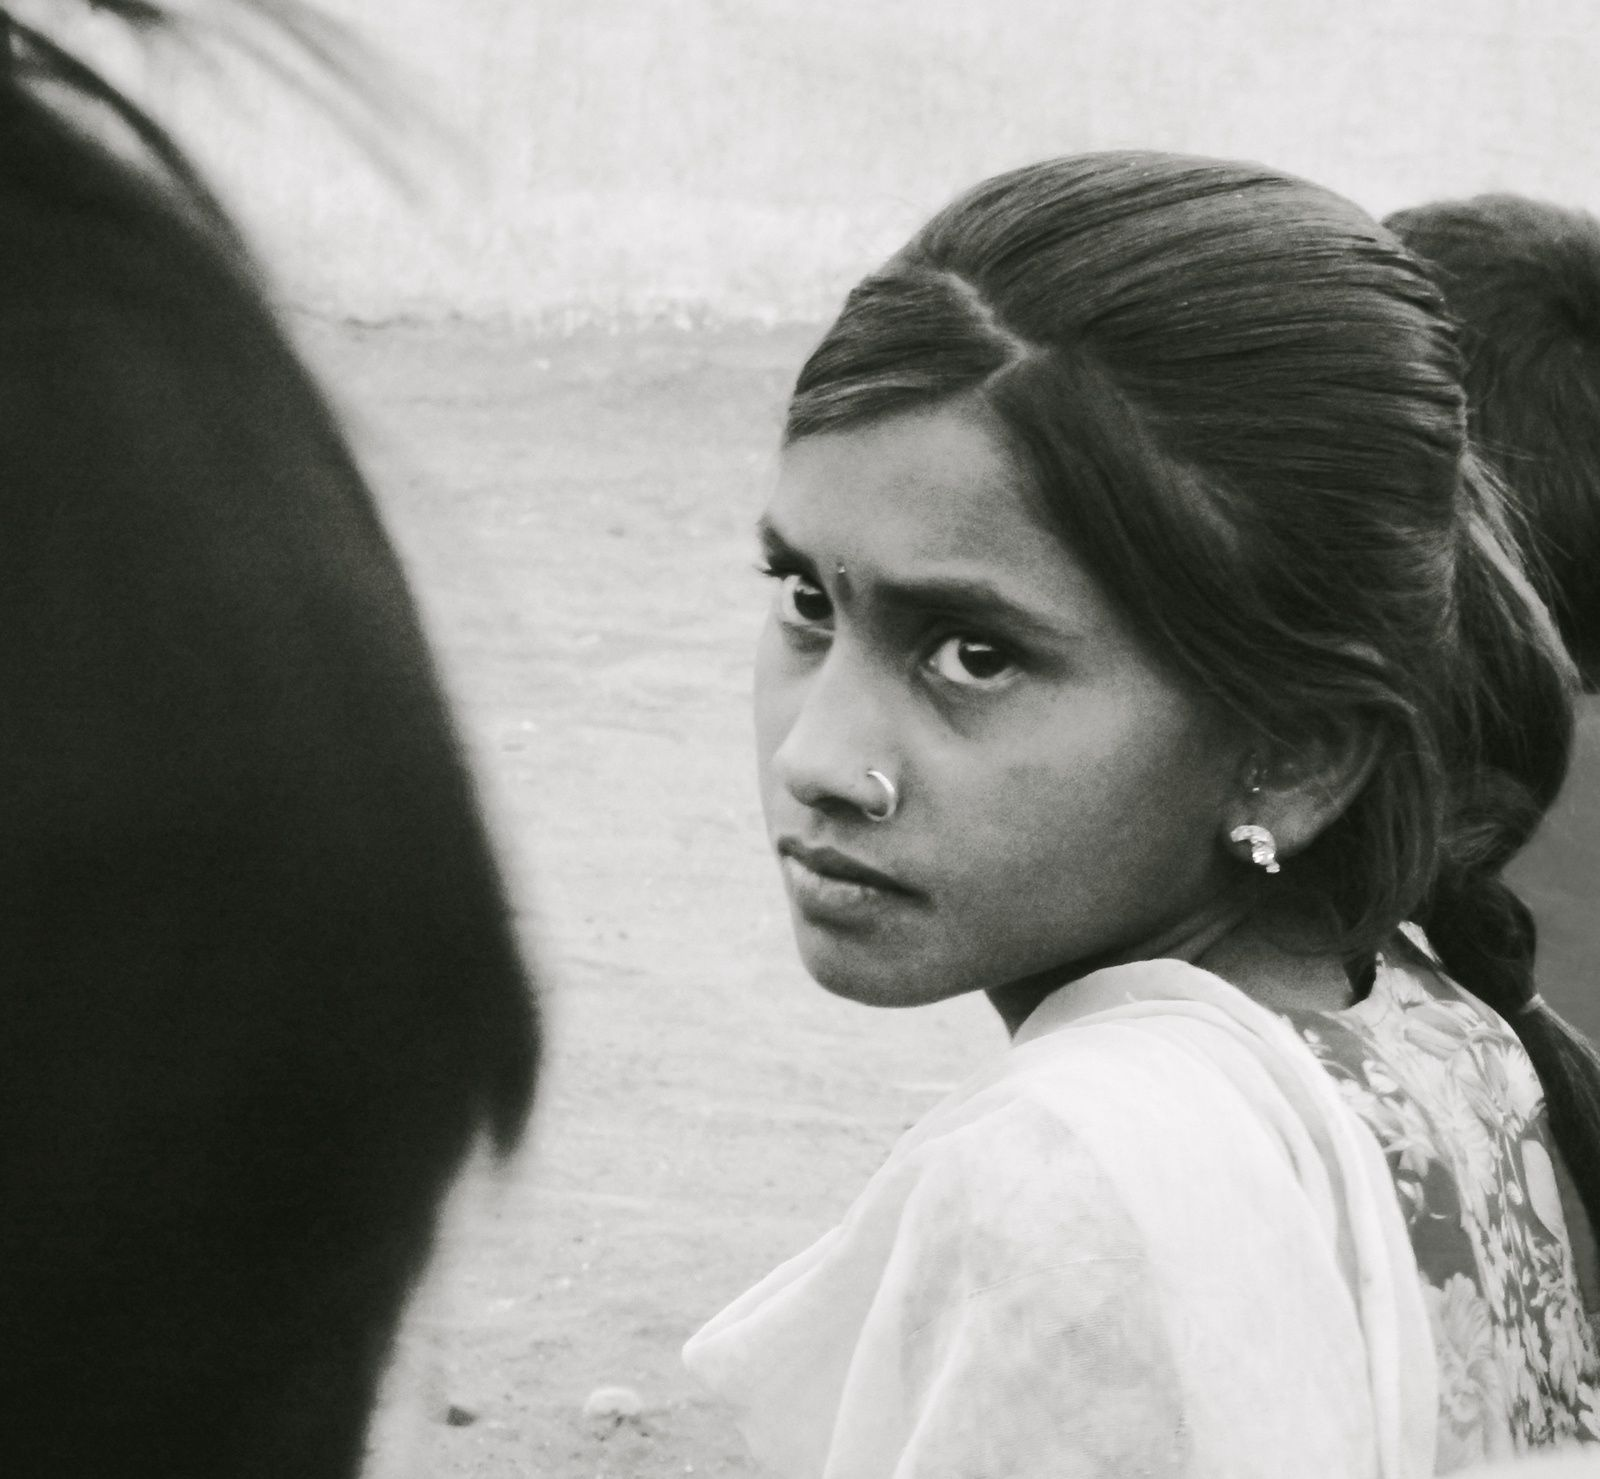 Little girl, Bhuranpur District - May 2014